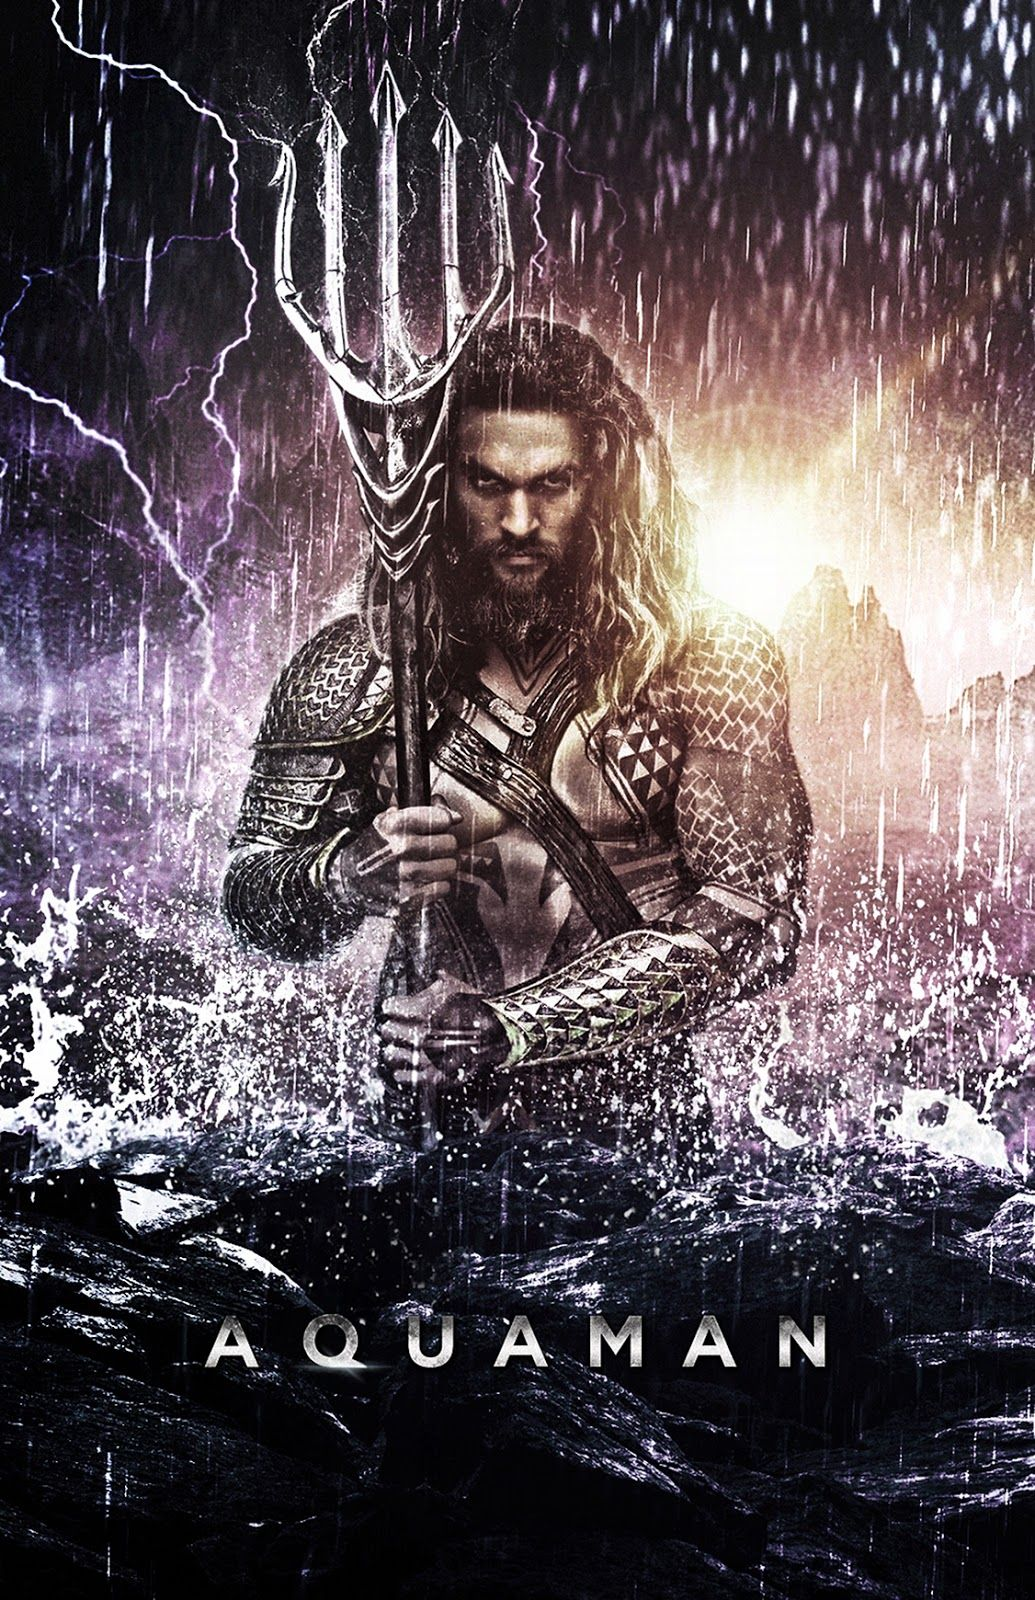 Permalink to Aquaman Live Wallpaper